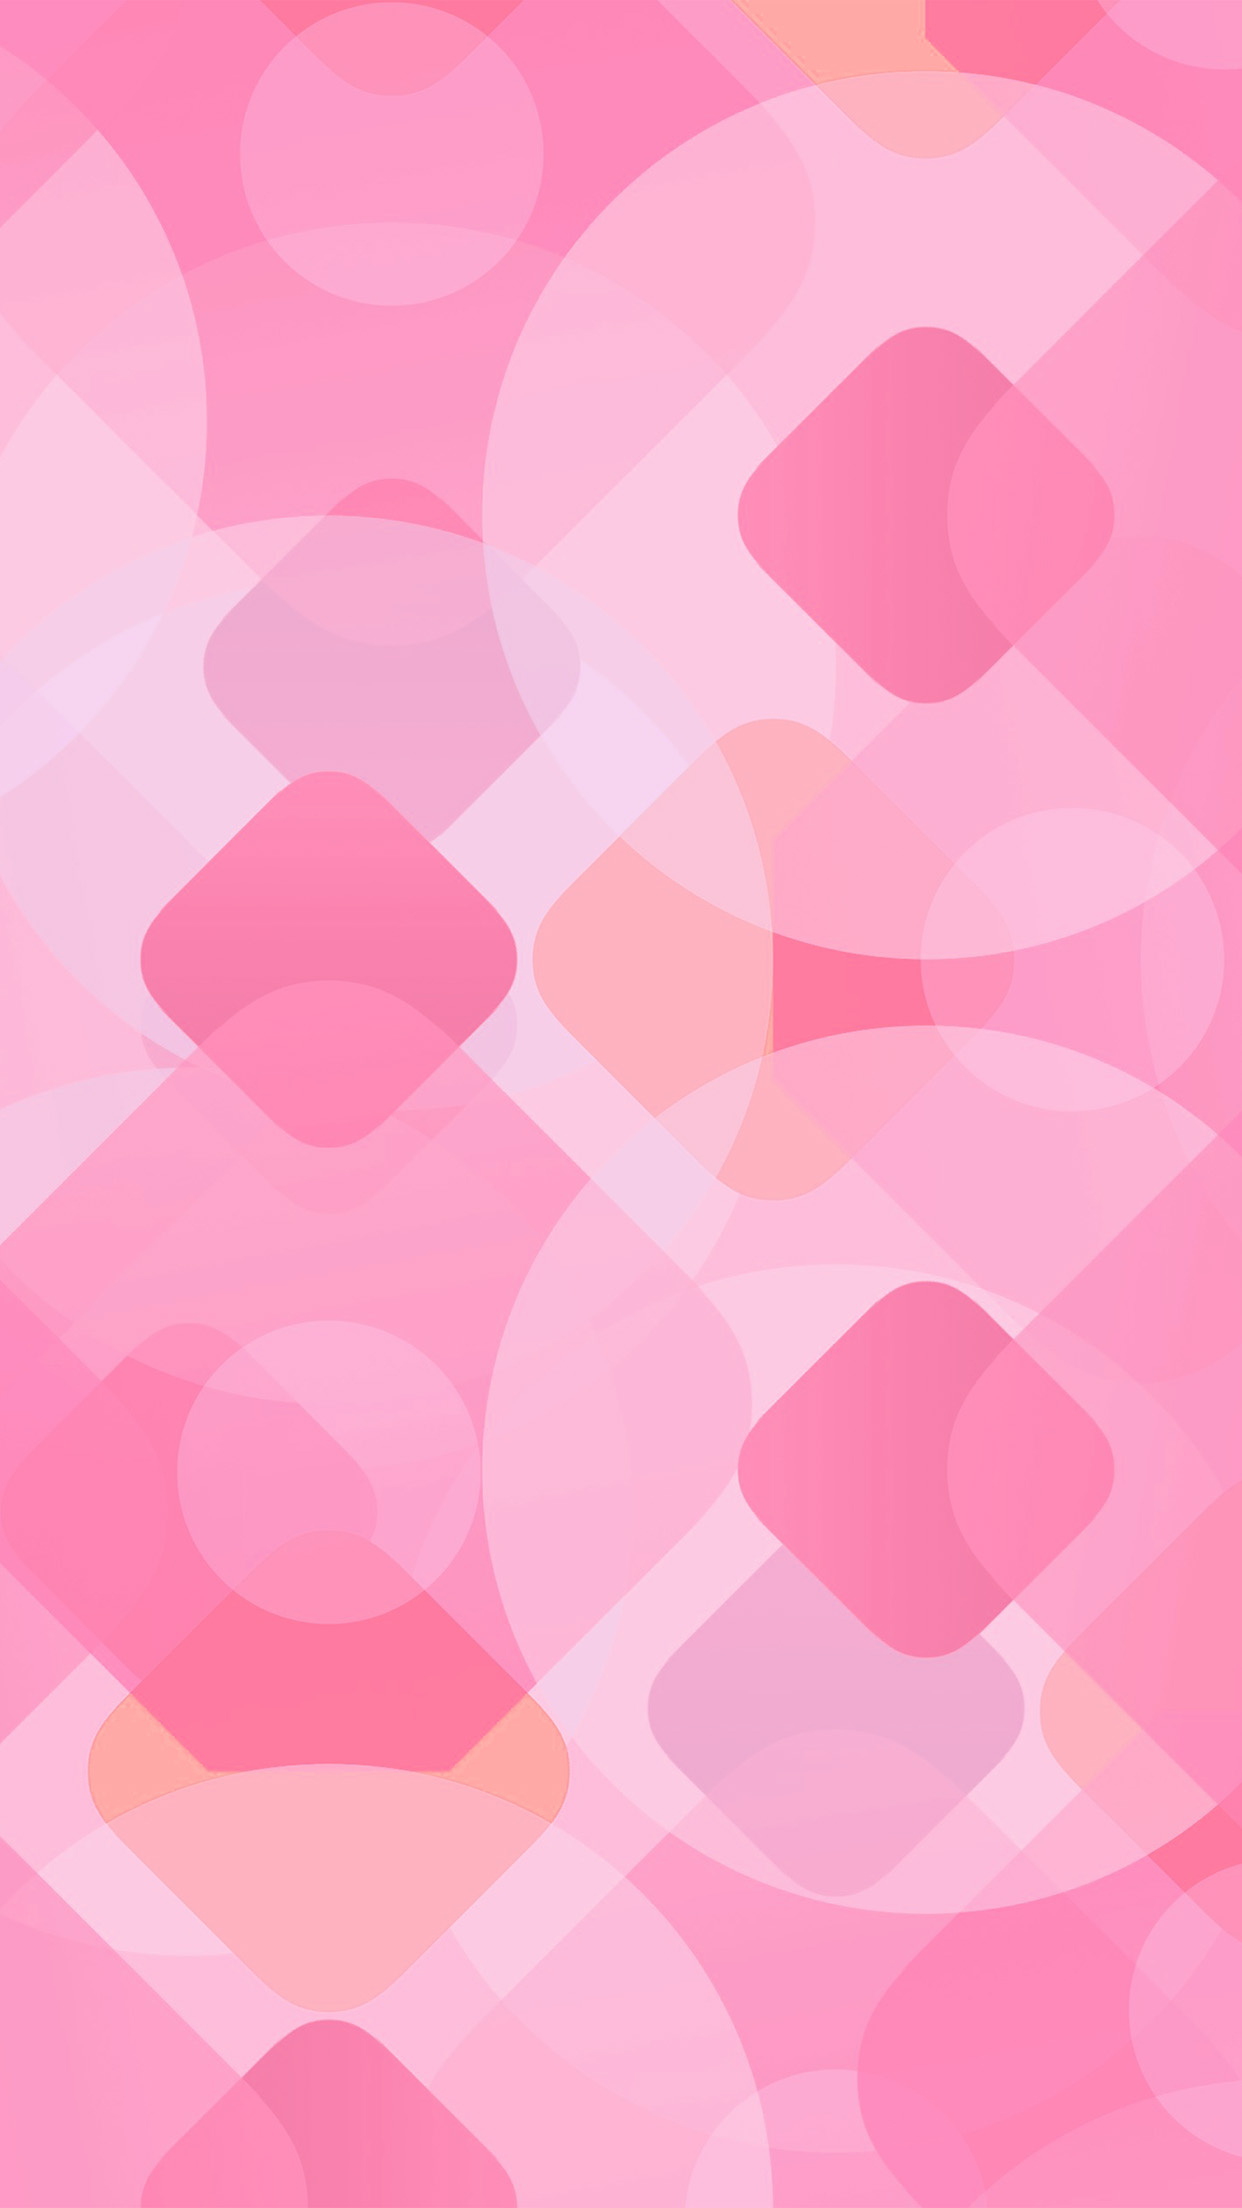 Ar7 Apple Wwdc Pink Red Pattern Android wallpaper